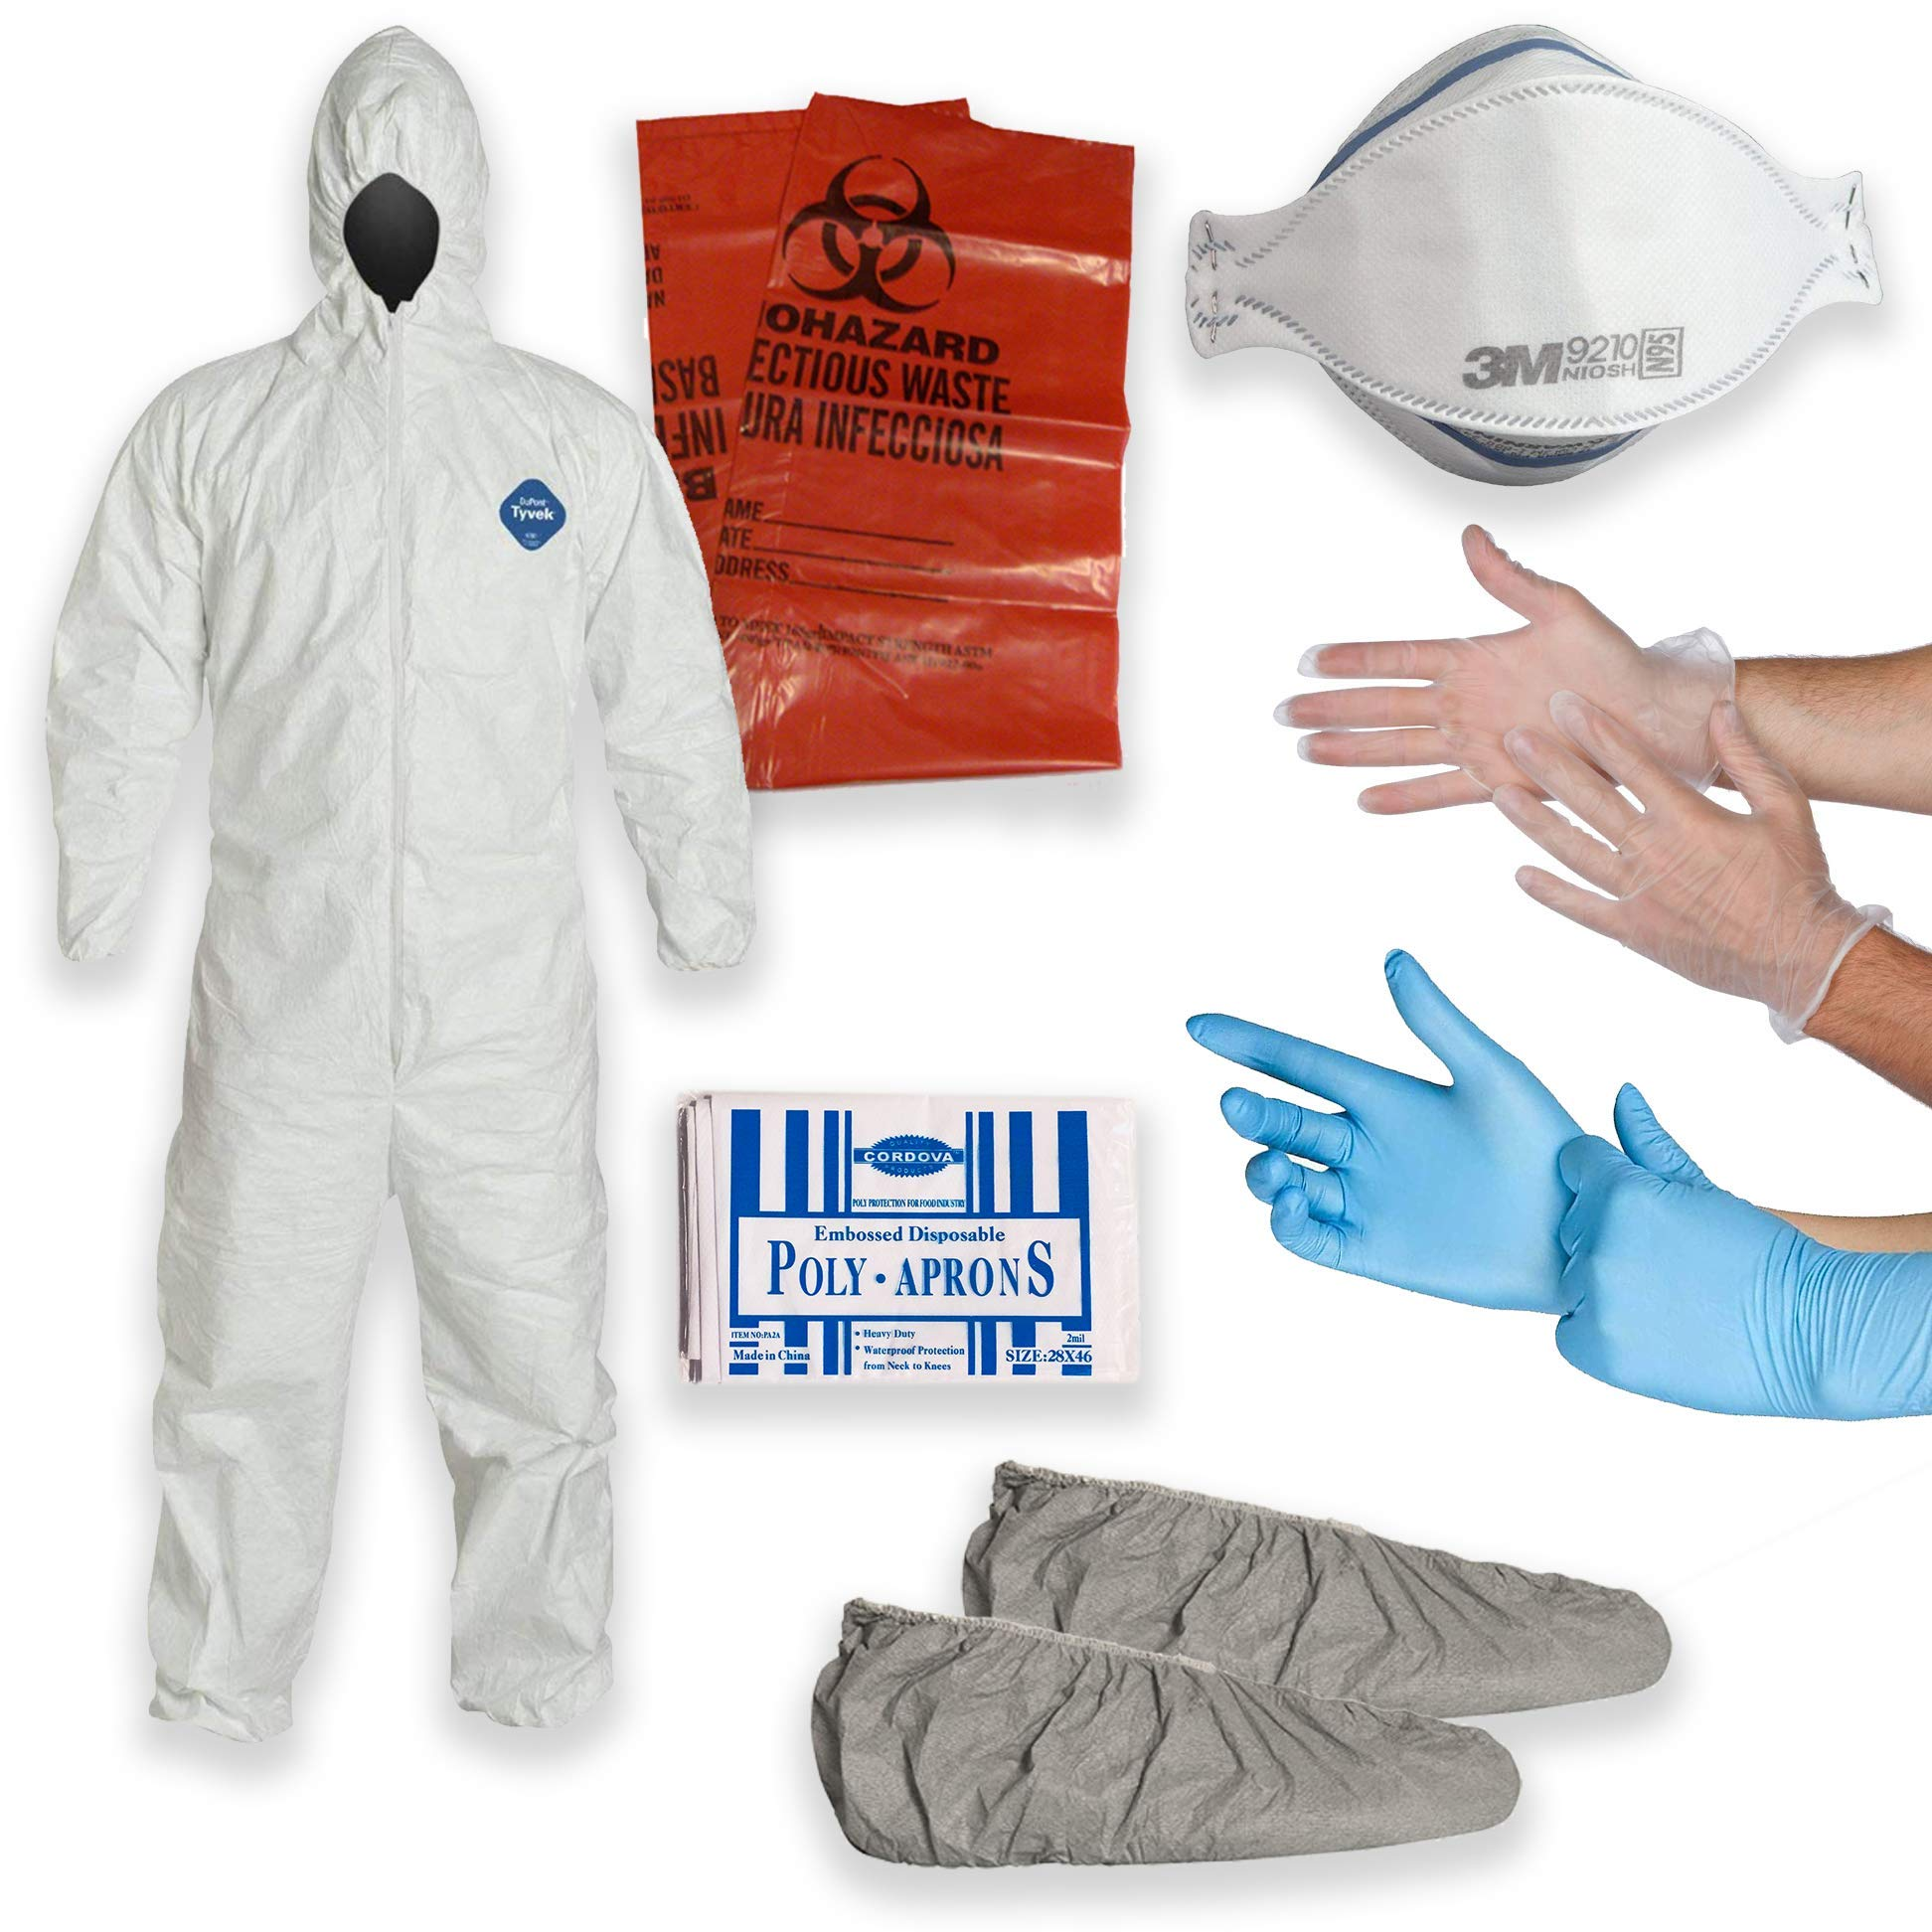 DuPont Multipurpose Cleanup Kit: Large Tyvek TY127 Coverall Suit, Shoe Covers, 3M 9210 N95 Respirator Mask, Polyethylene Apron, 2 Pair of Protective Gloves, Biohazard Disposal Bag by HWD Safety